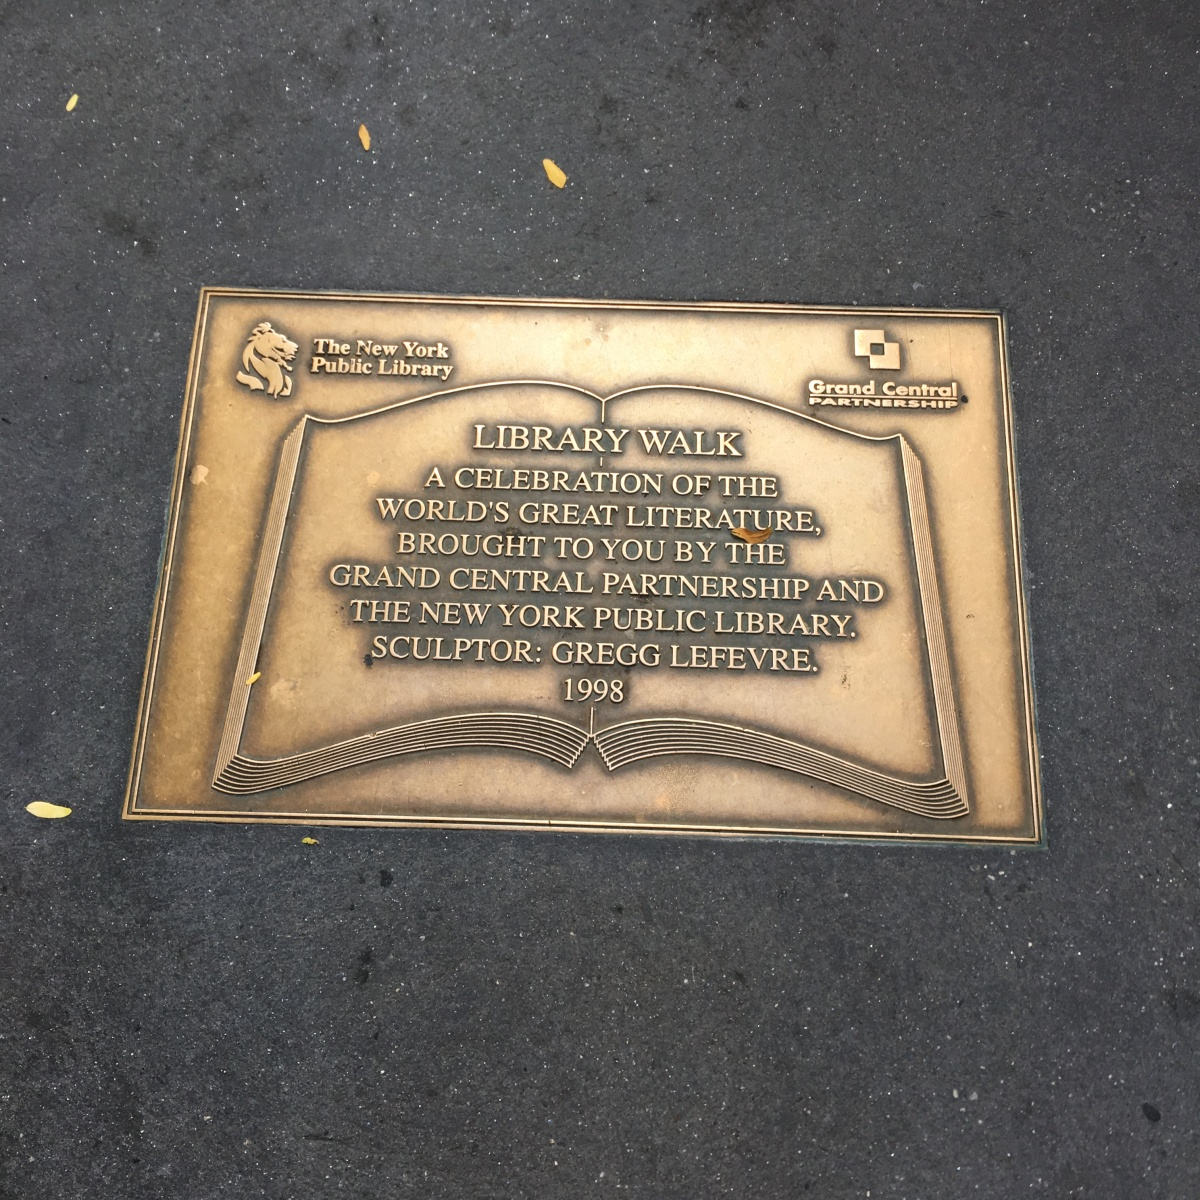 "Bronze-gold colored plaque embedded in a New York sidewalk. Its inscription reads: ""Library Walk. A celebration of the world's great literature, brought to you by the Grand Central Partnership and the New York Public Library. Sculptor: Gregg LeFevre. 1998."